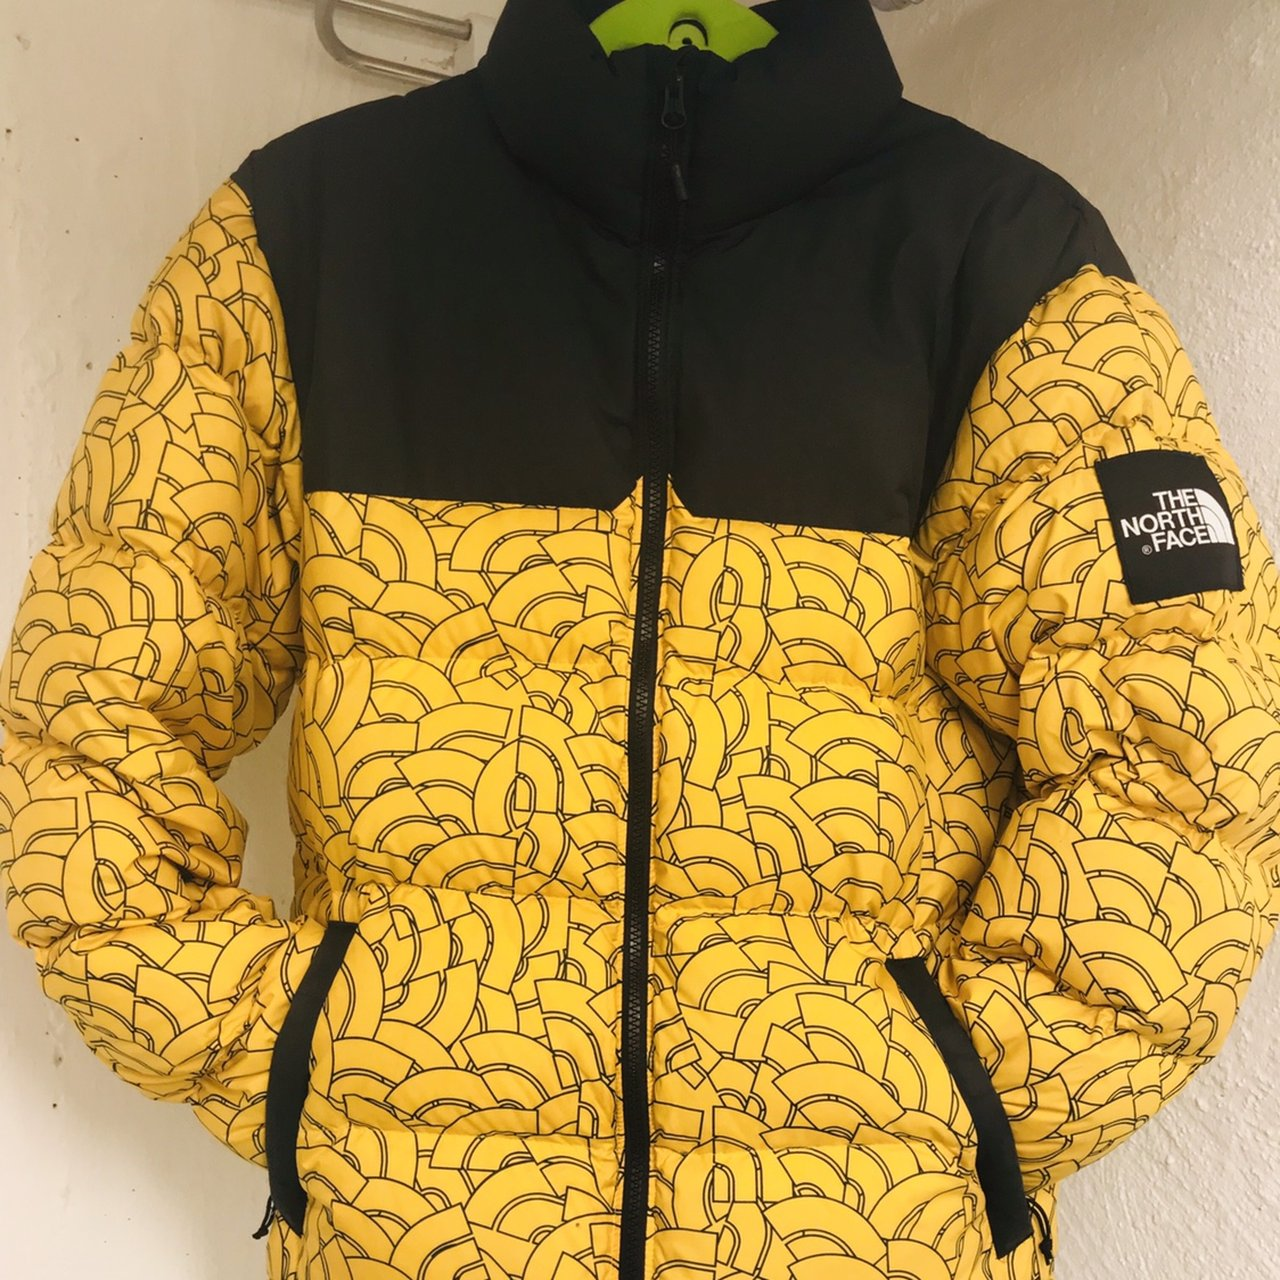 The North Face black label 1992 nuptse jacket in rare yellow - Depop 1f8c13ce4